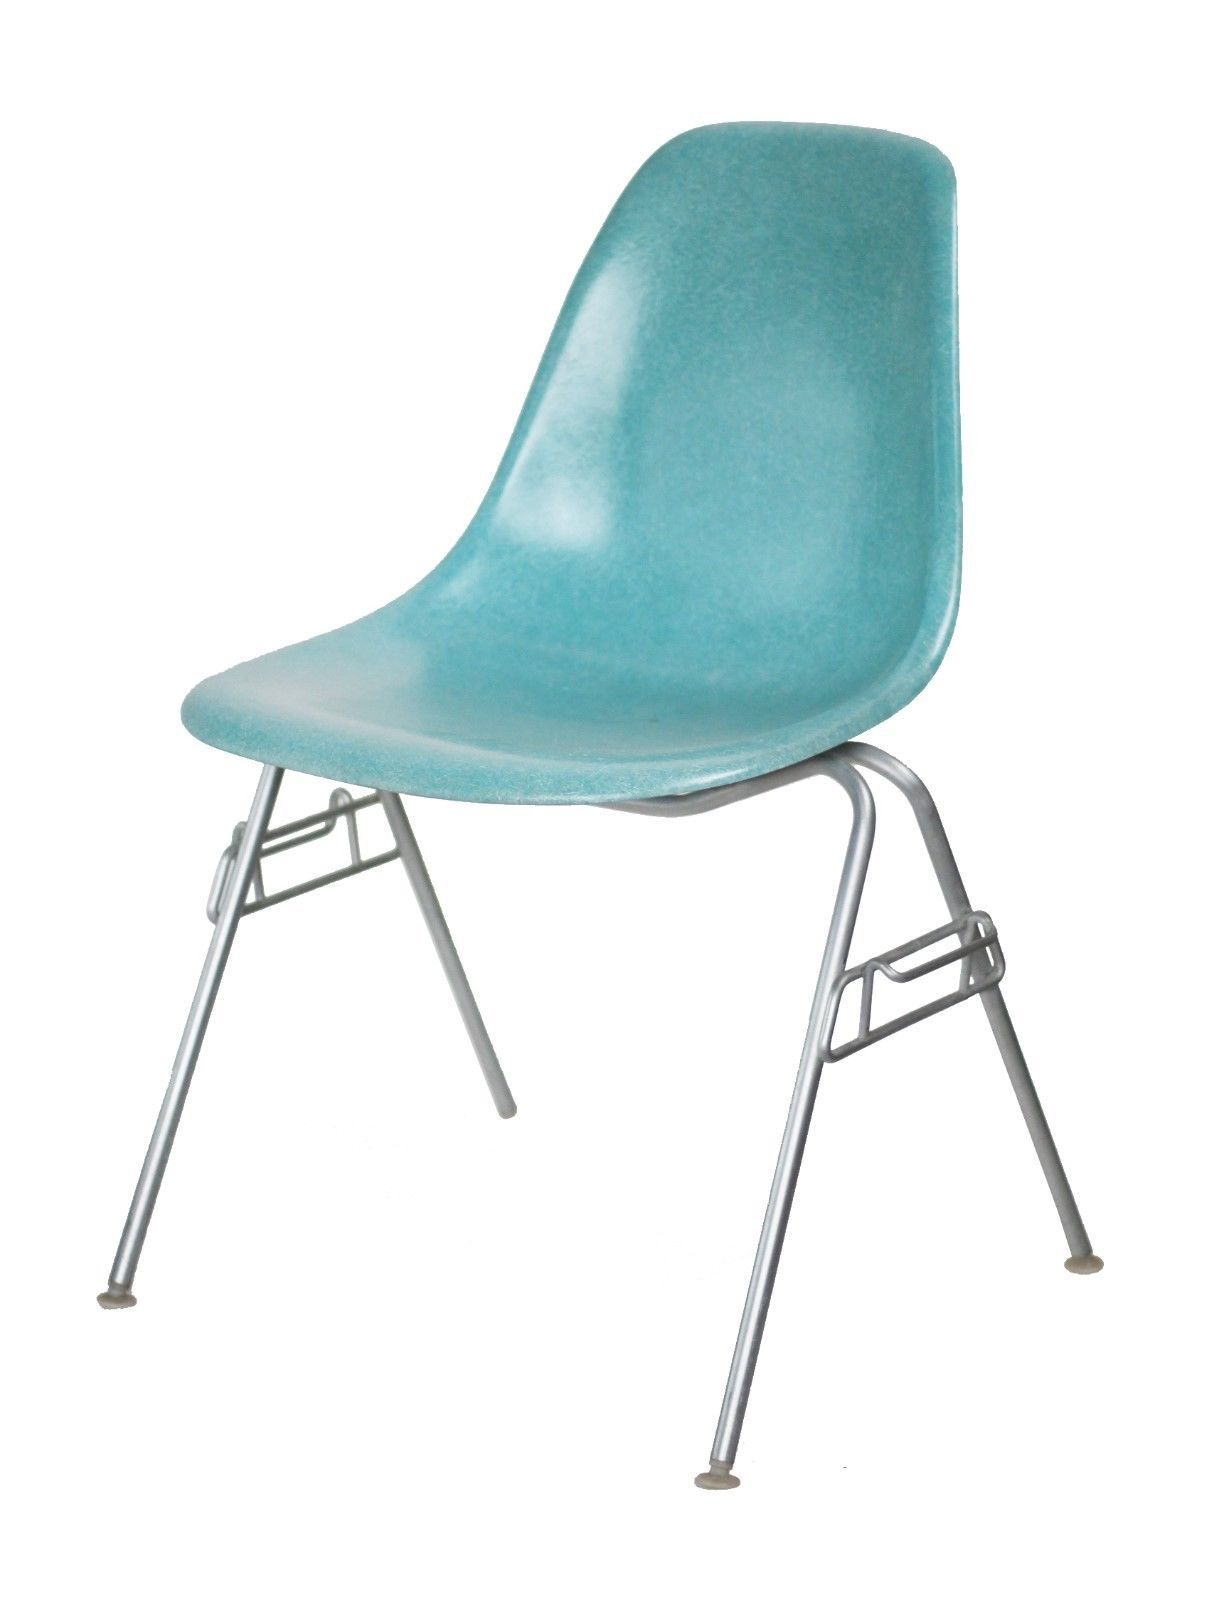 Lounge Sessel Fiberglas Vintage Eames Herman Miller Eames Side Shell Chair In Turquoise